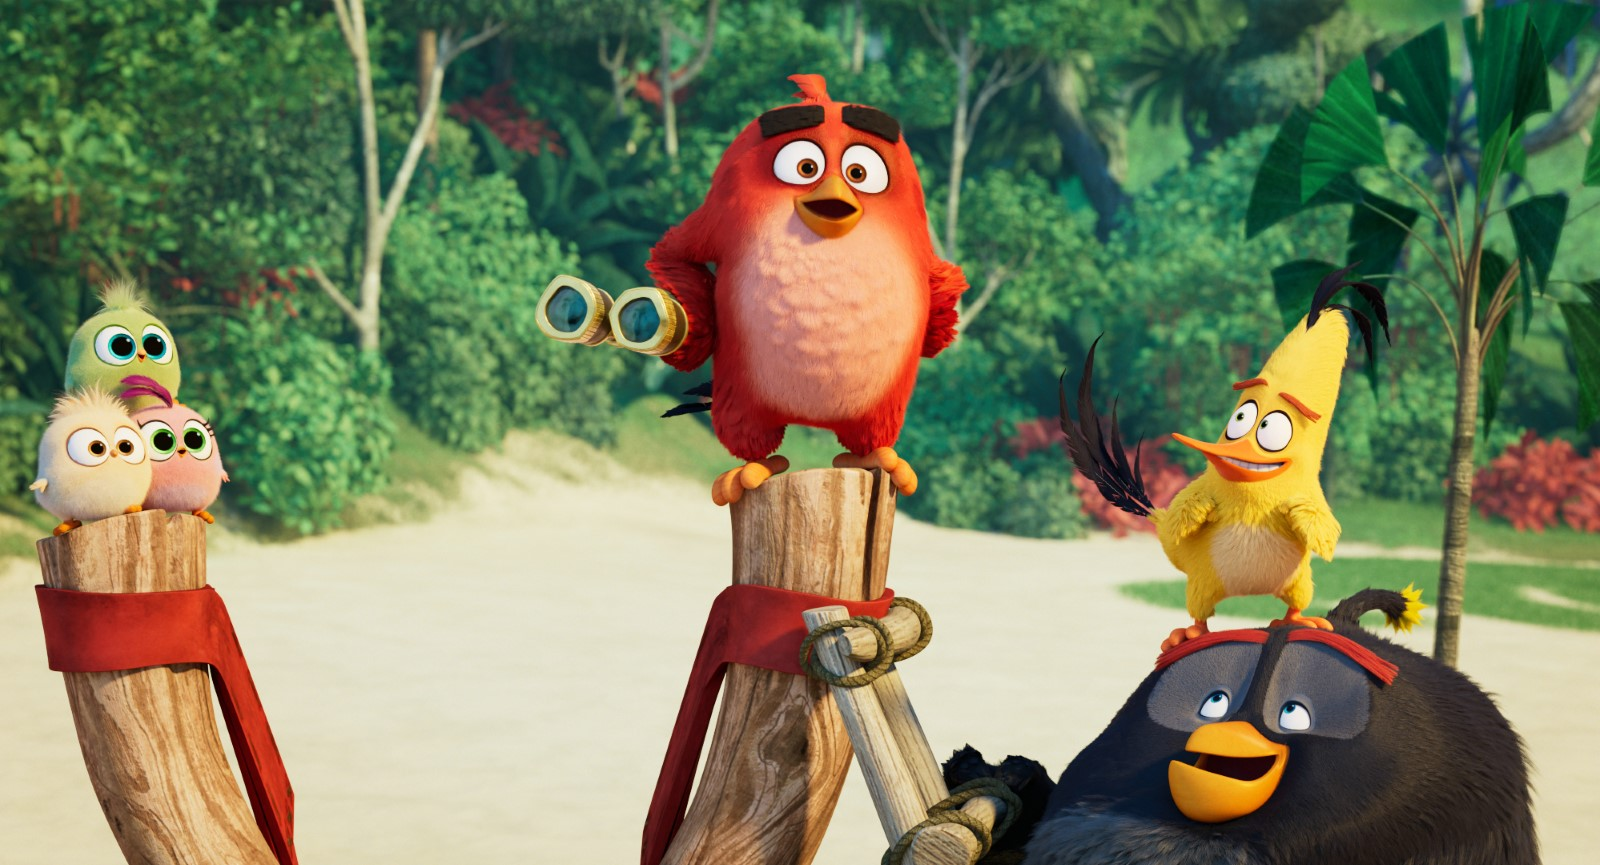 Phim Những Chú Chim Giận Dữ 2 / The Angry Birds Movie 2